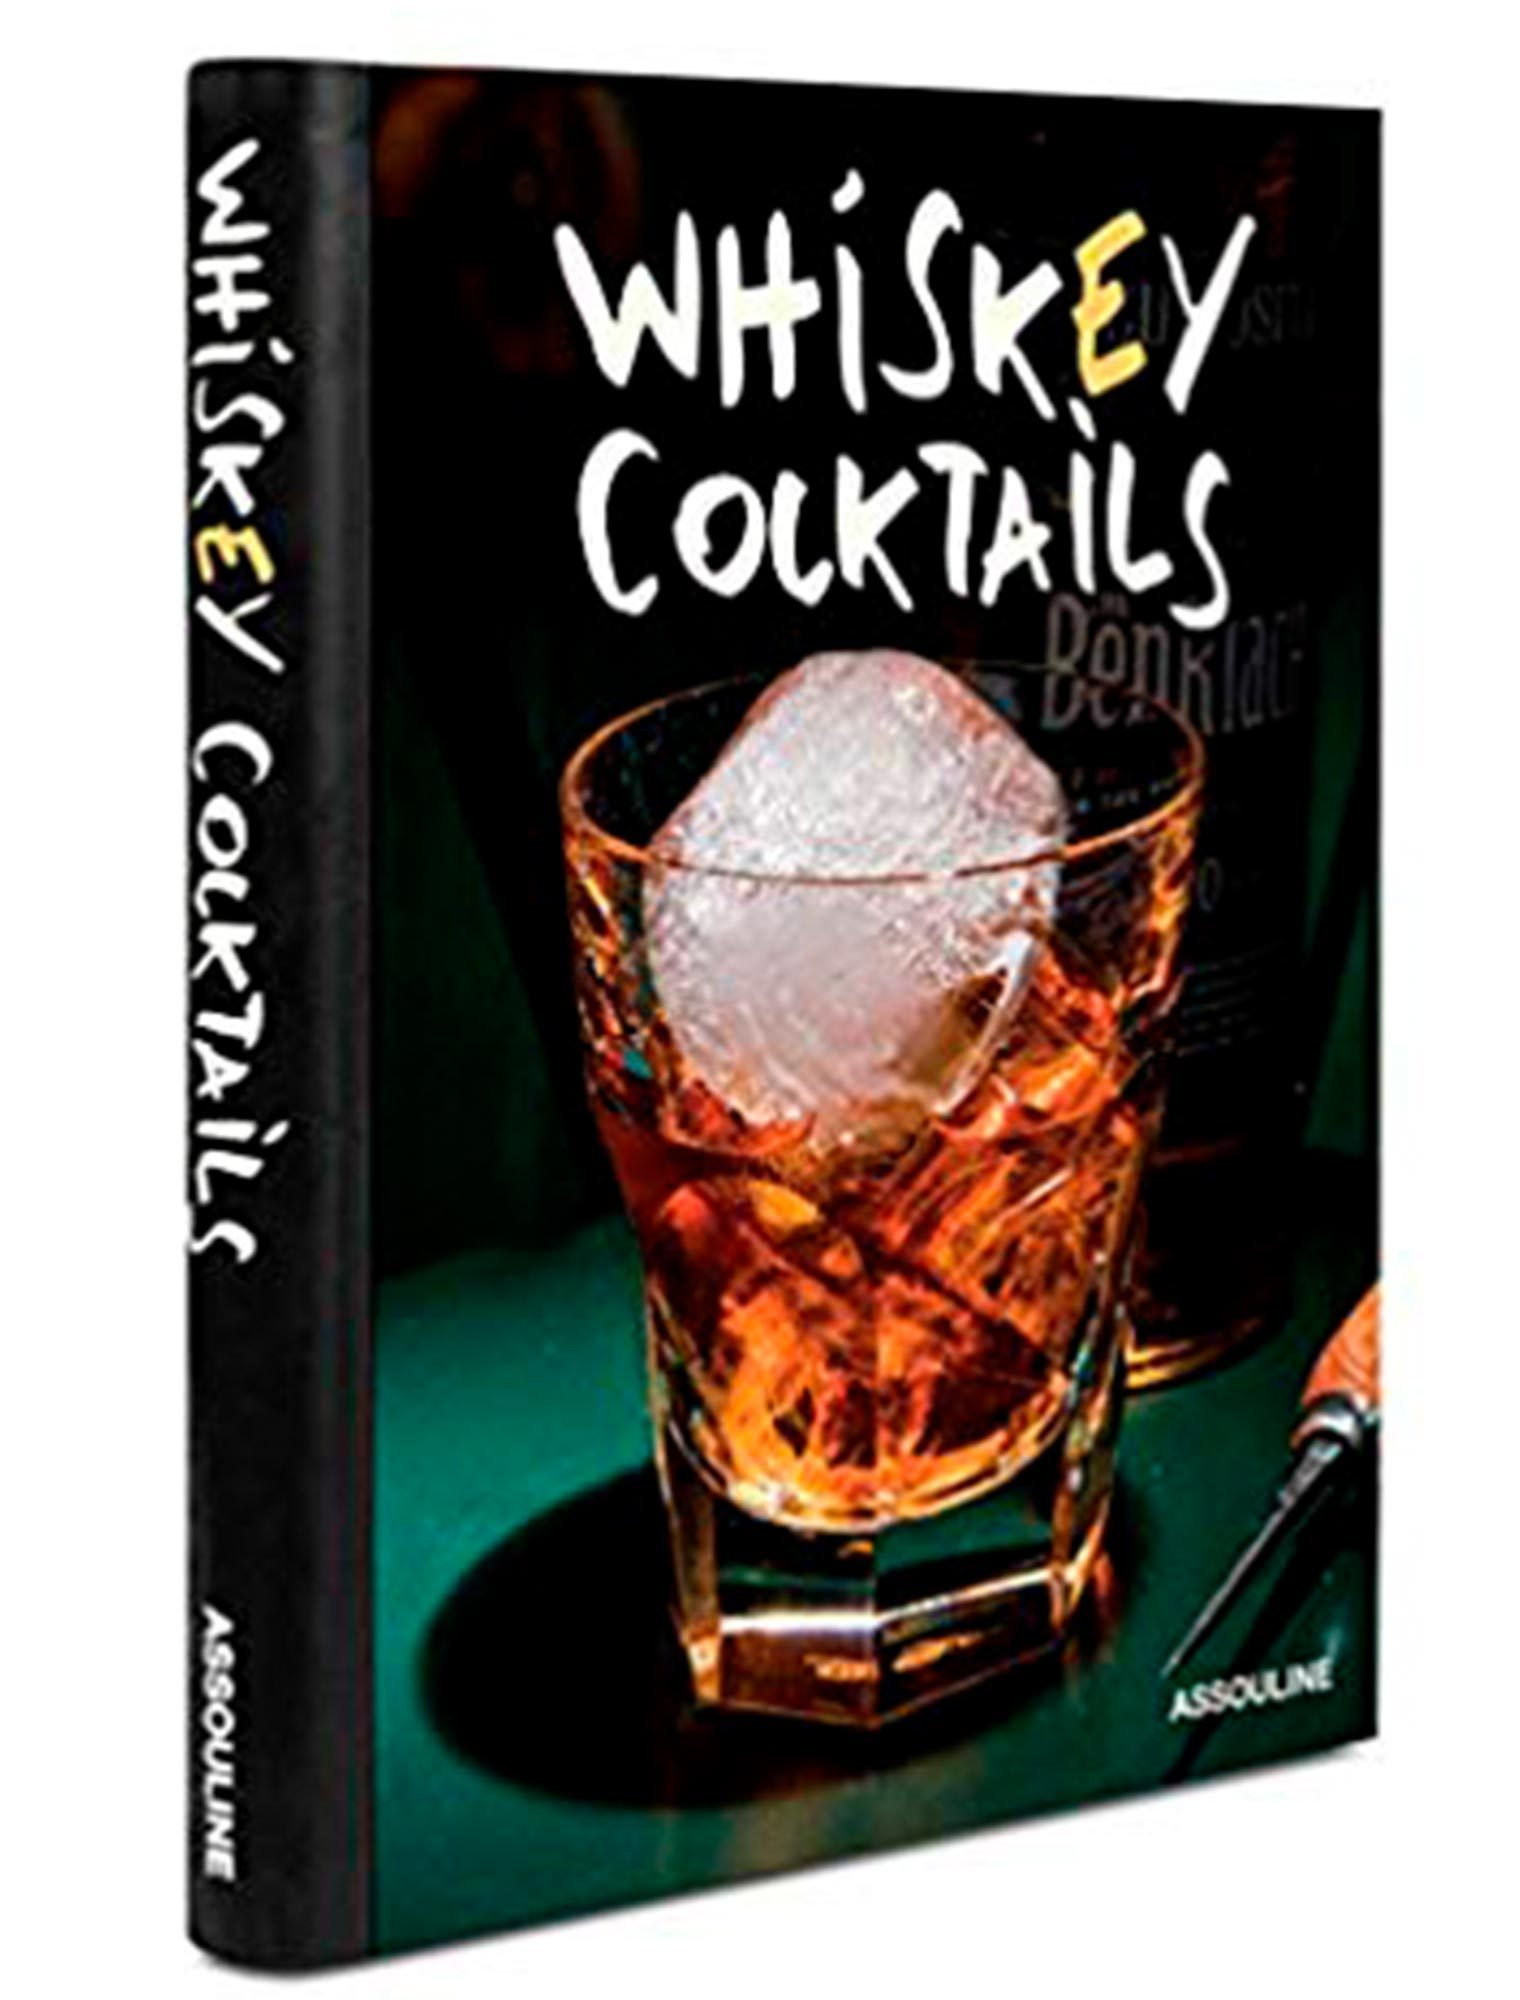 Whiskey Coctails